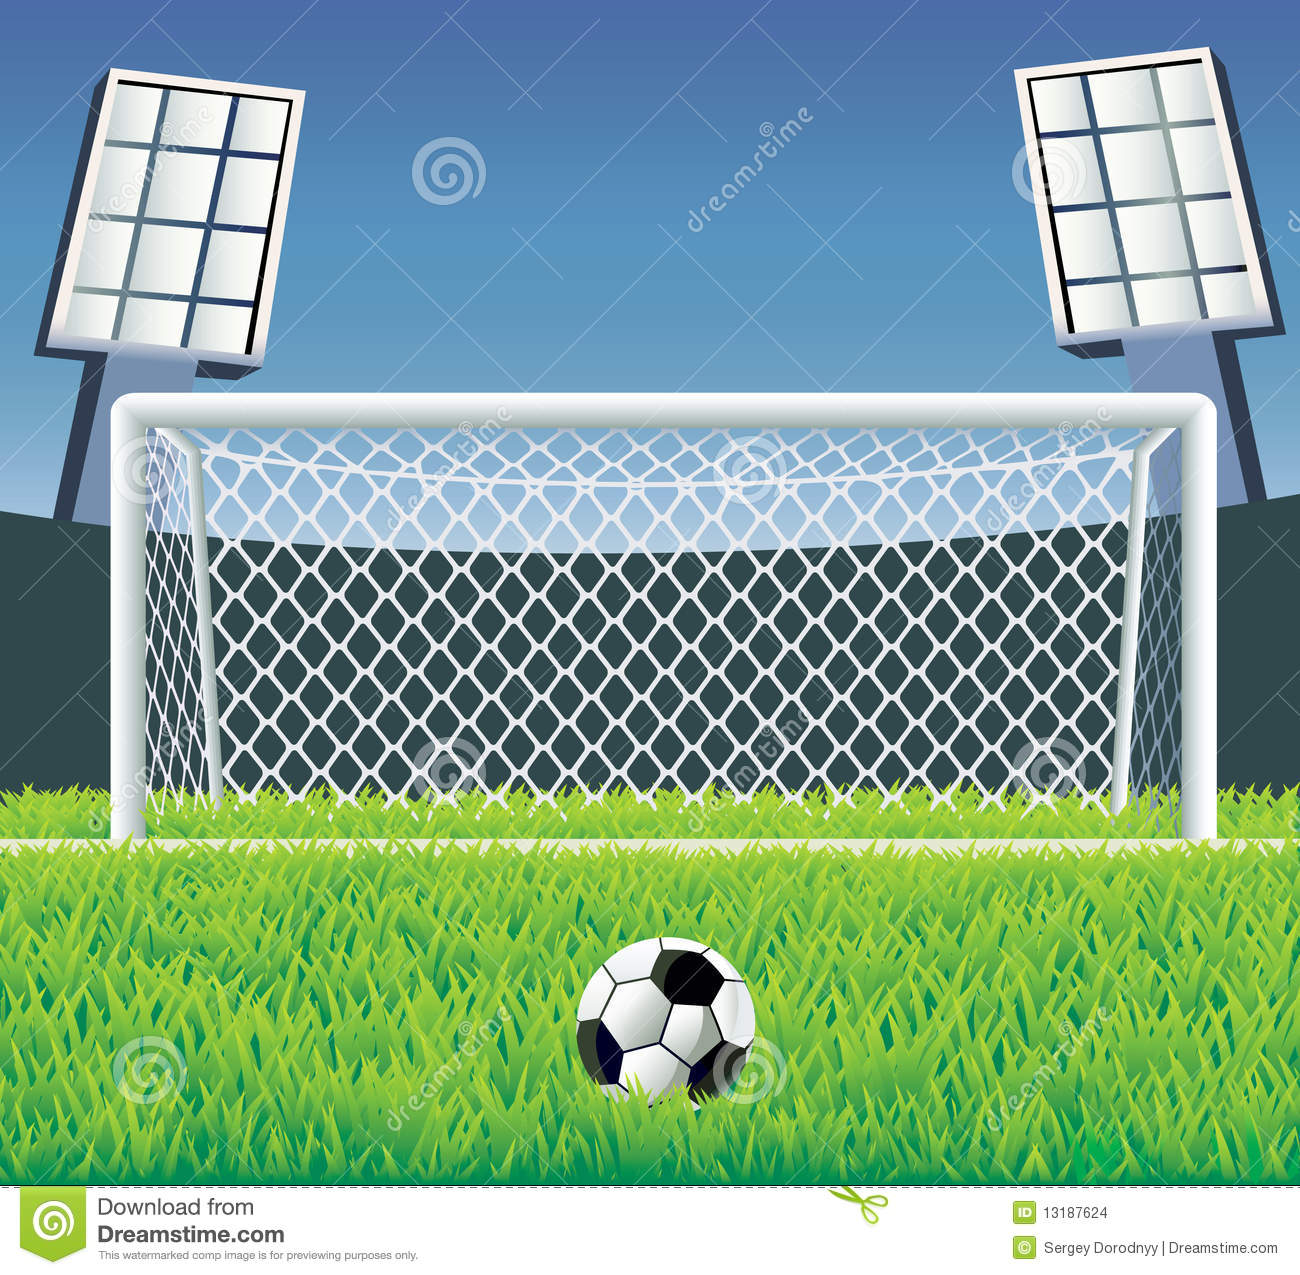 Clip Art Soccer Goal Clipart soccer goal clipart kid with realistic grass stock images image 13187624